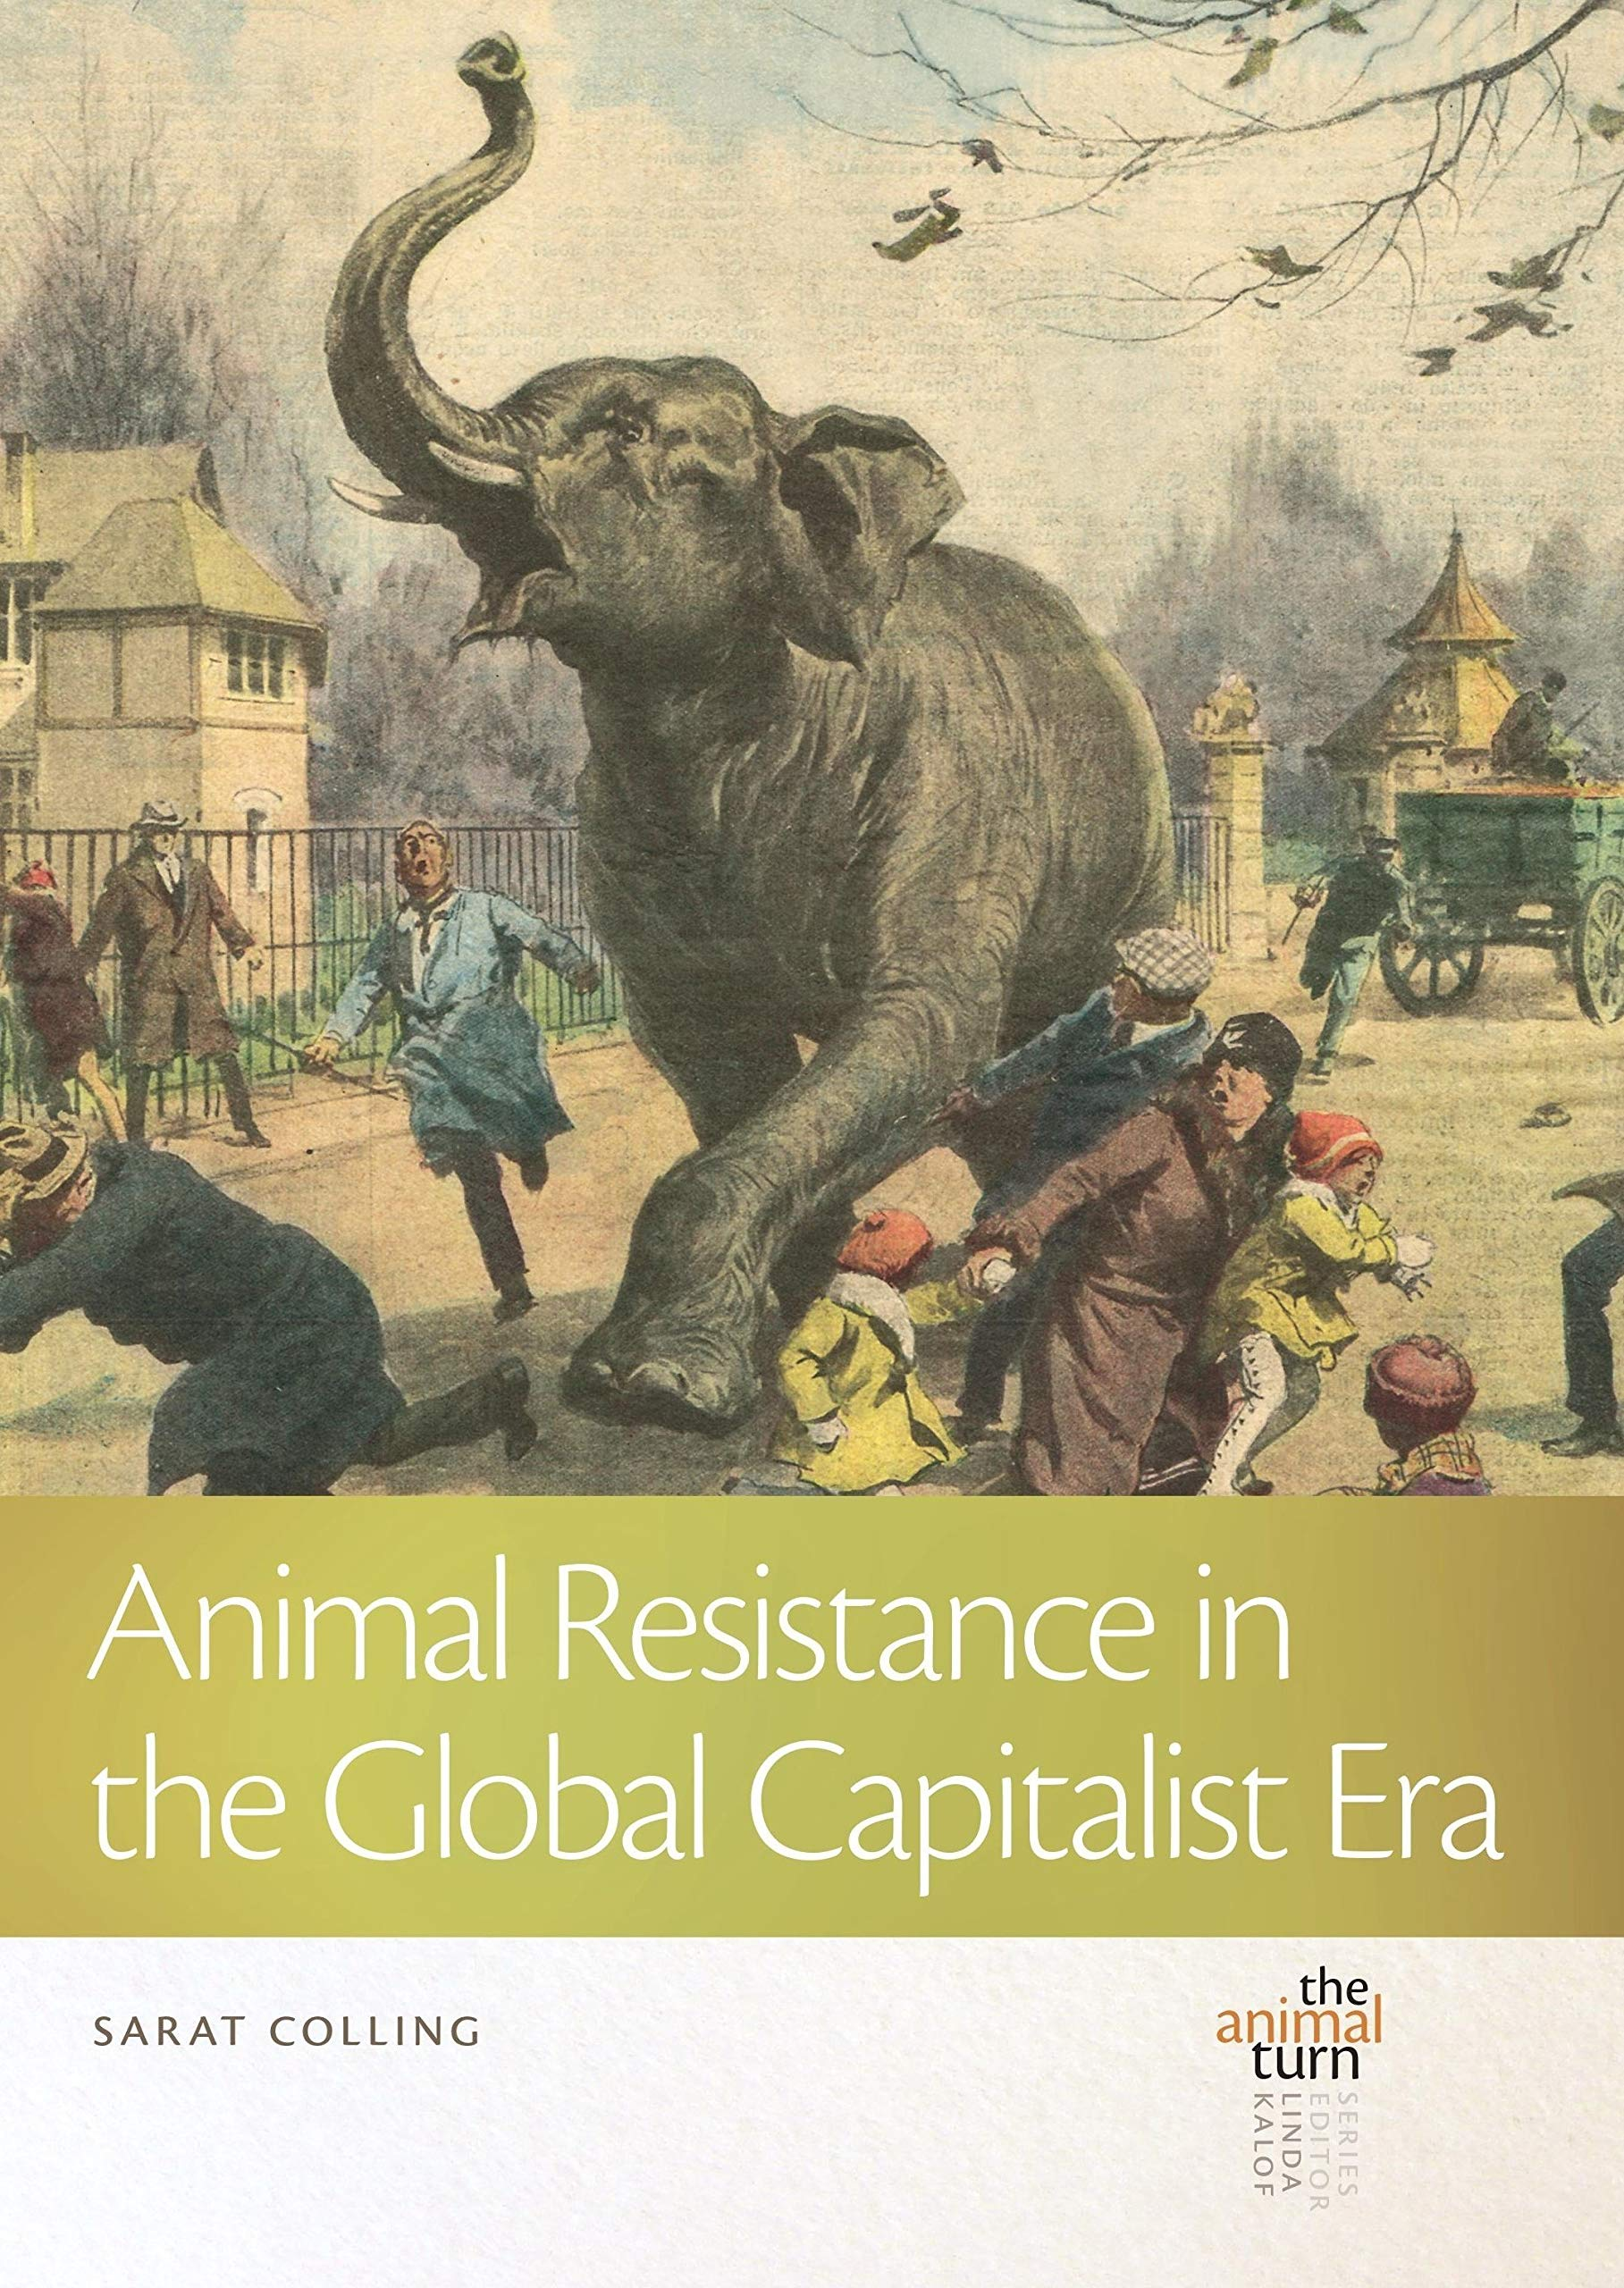 Animal Resistance in the Global Capitalist Era (The Animal Turn): Colling,  Sarat: 9781611863772: Amazon.com: Books